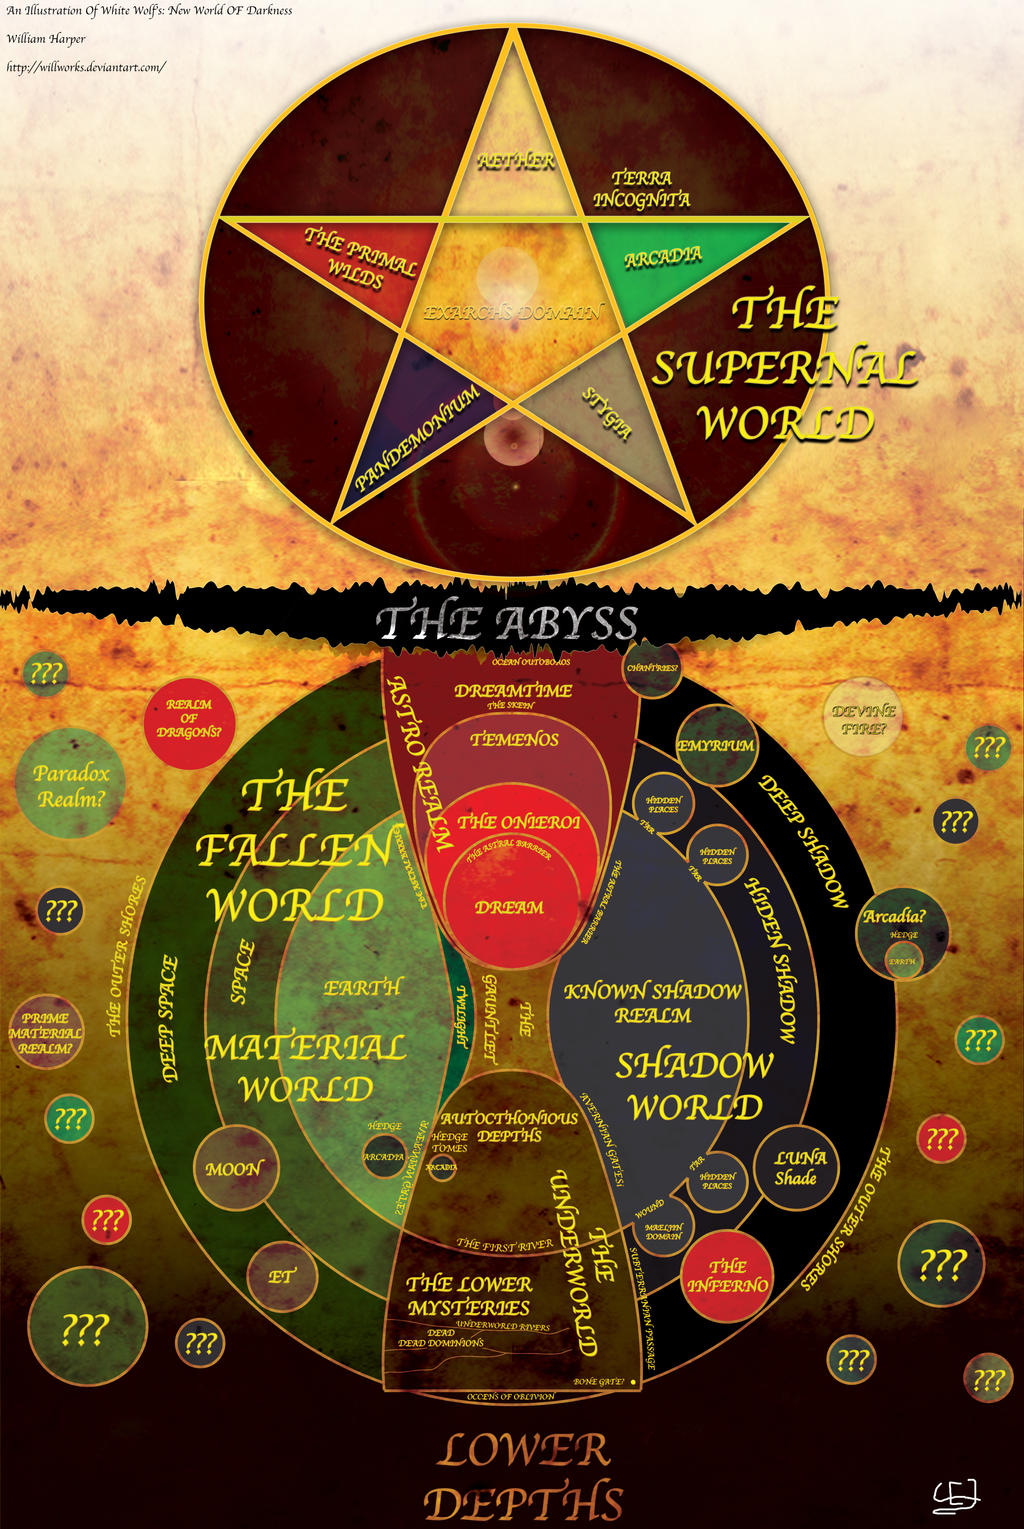 New World of Darkness Cosmology Map drawing by WillWorks on